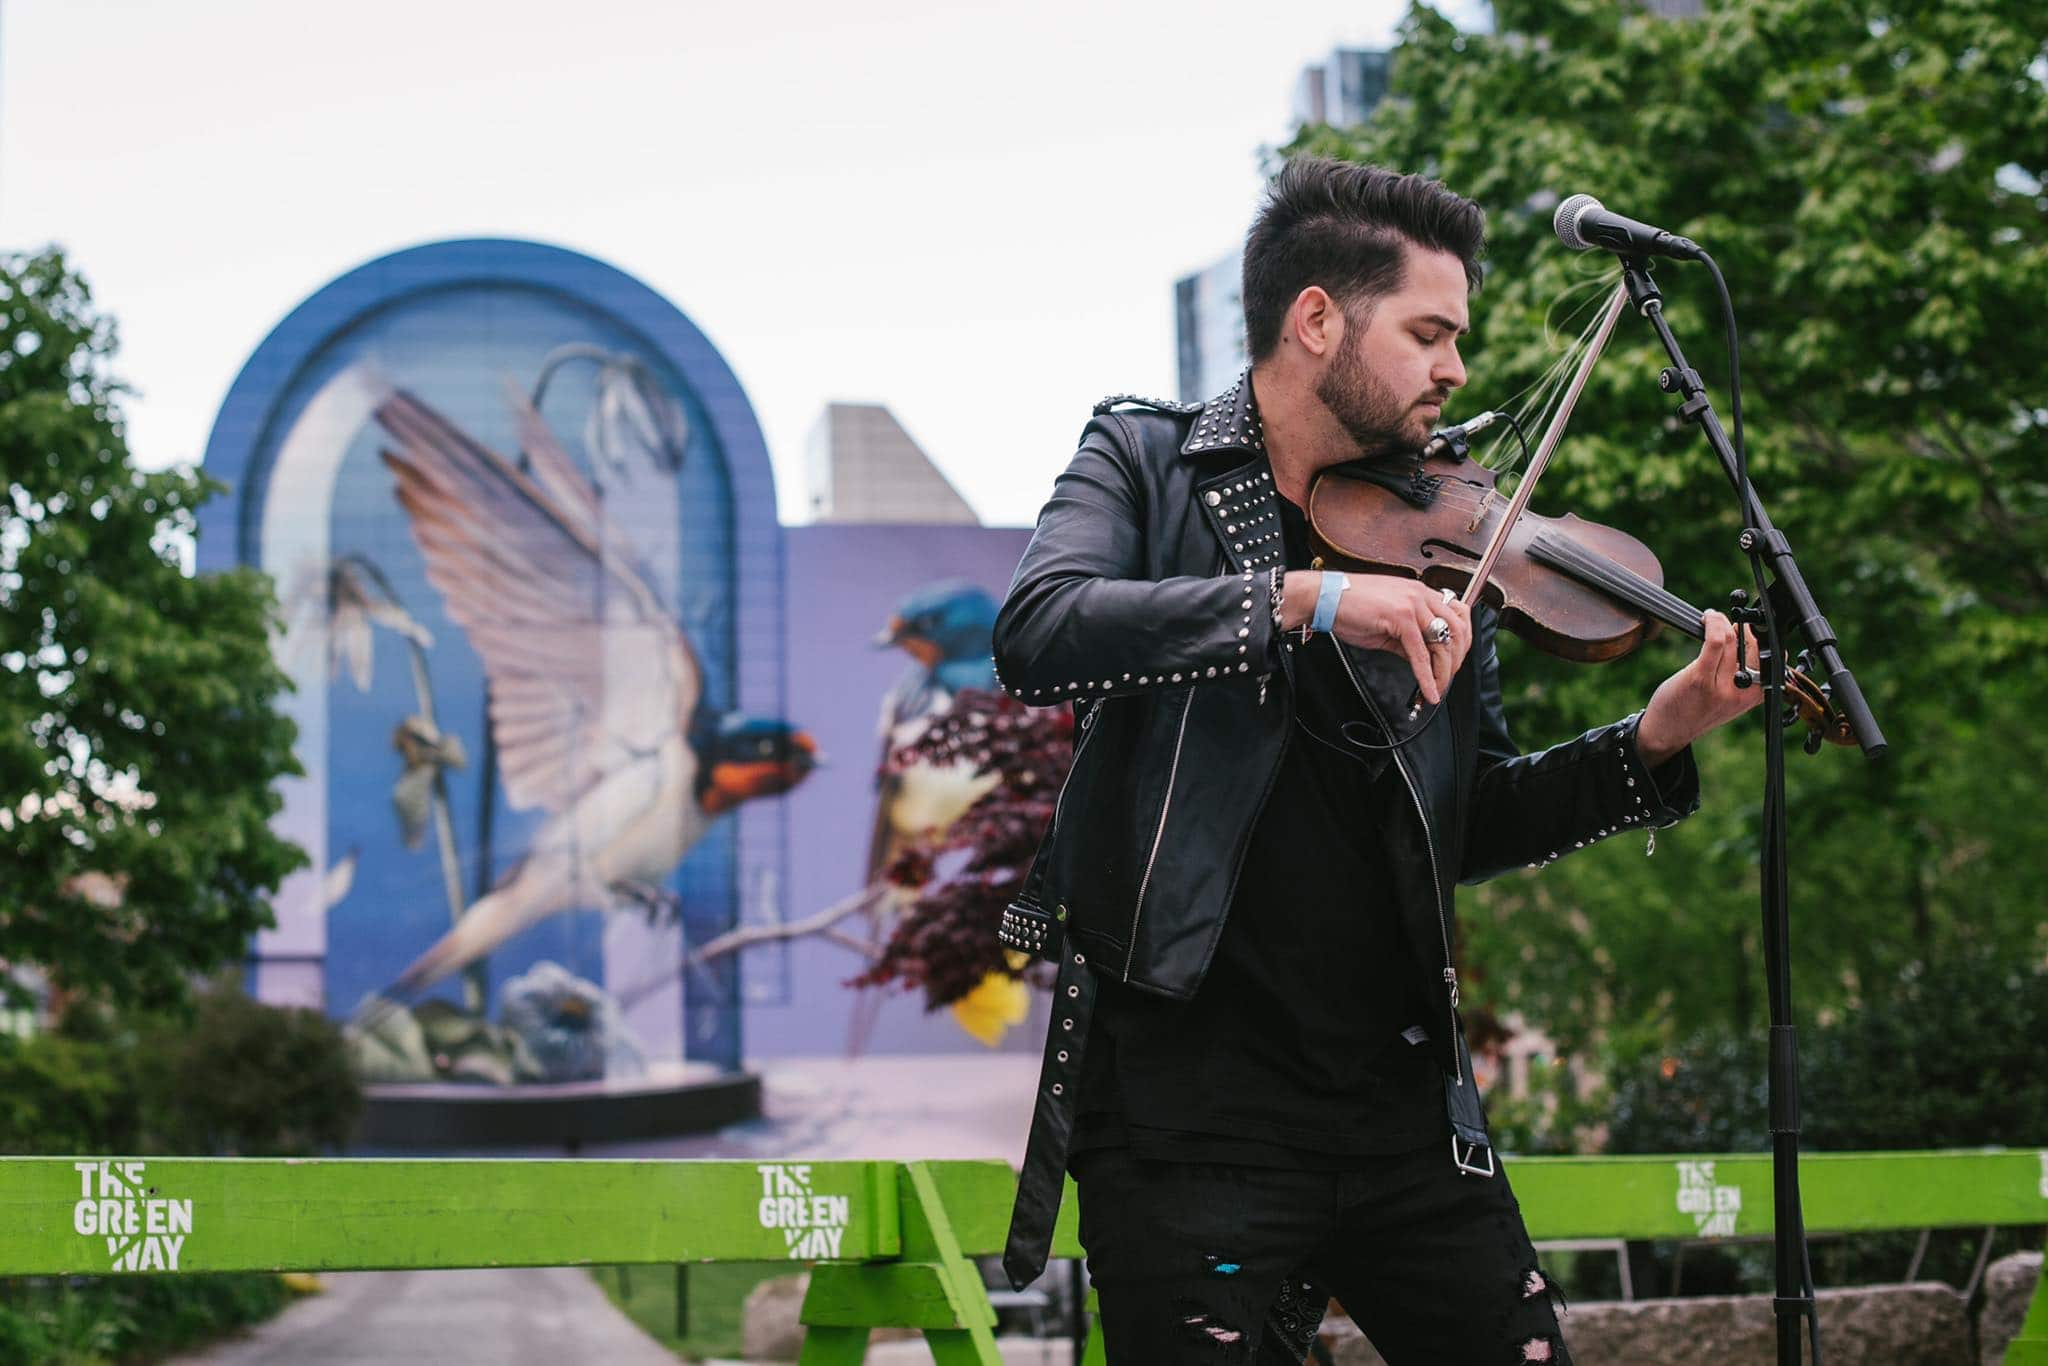 Thursday, 6/27 - Hip-Hop Violinist Rhett Price, 7 PM at Three Links / TICKETSBen Morris, Justin Myers, 7:30 PM at Adair's Saloon / FREEBrave Little Howl, 8:30 PM at The Rustic / FREETriston Marez, 9 PM at The Blue Light / TICKETSCrowd Control Open Mic Night with Billy Law, 7 PM at Sundown At Granada / FREEFrenchie's Blues Destroyers, 9 PM at Sundown At Granada / FREEBum Lucky, Audic Empire, Positive Vibe Tribe, Shaka, Burning Slow, 7:30 PM at Curtain Club / TICKETSSincere Engineer, Heart Attack Man, 8 PM at Ruins / TICKETSBoDeans with special guest Cameron Matthew Ray, 8 PM at Kessler Theater / TICKETSAmerican Football, Tomberlin, 8 PM at Trees / TICKETS